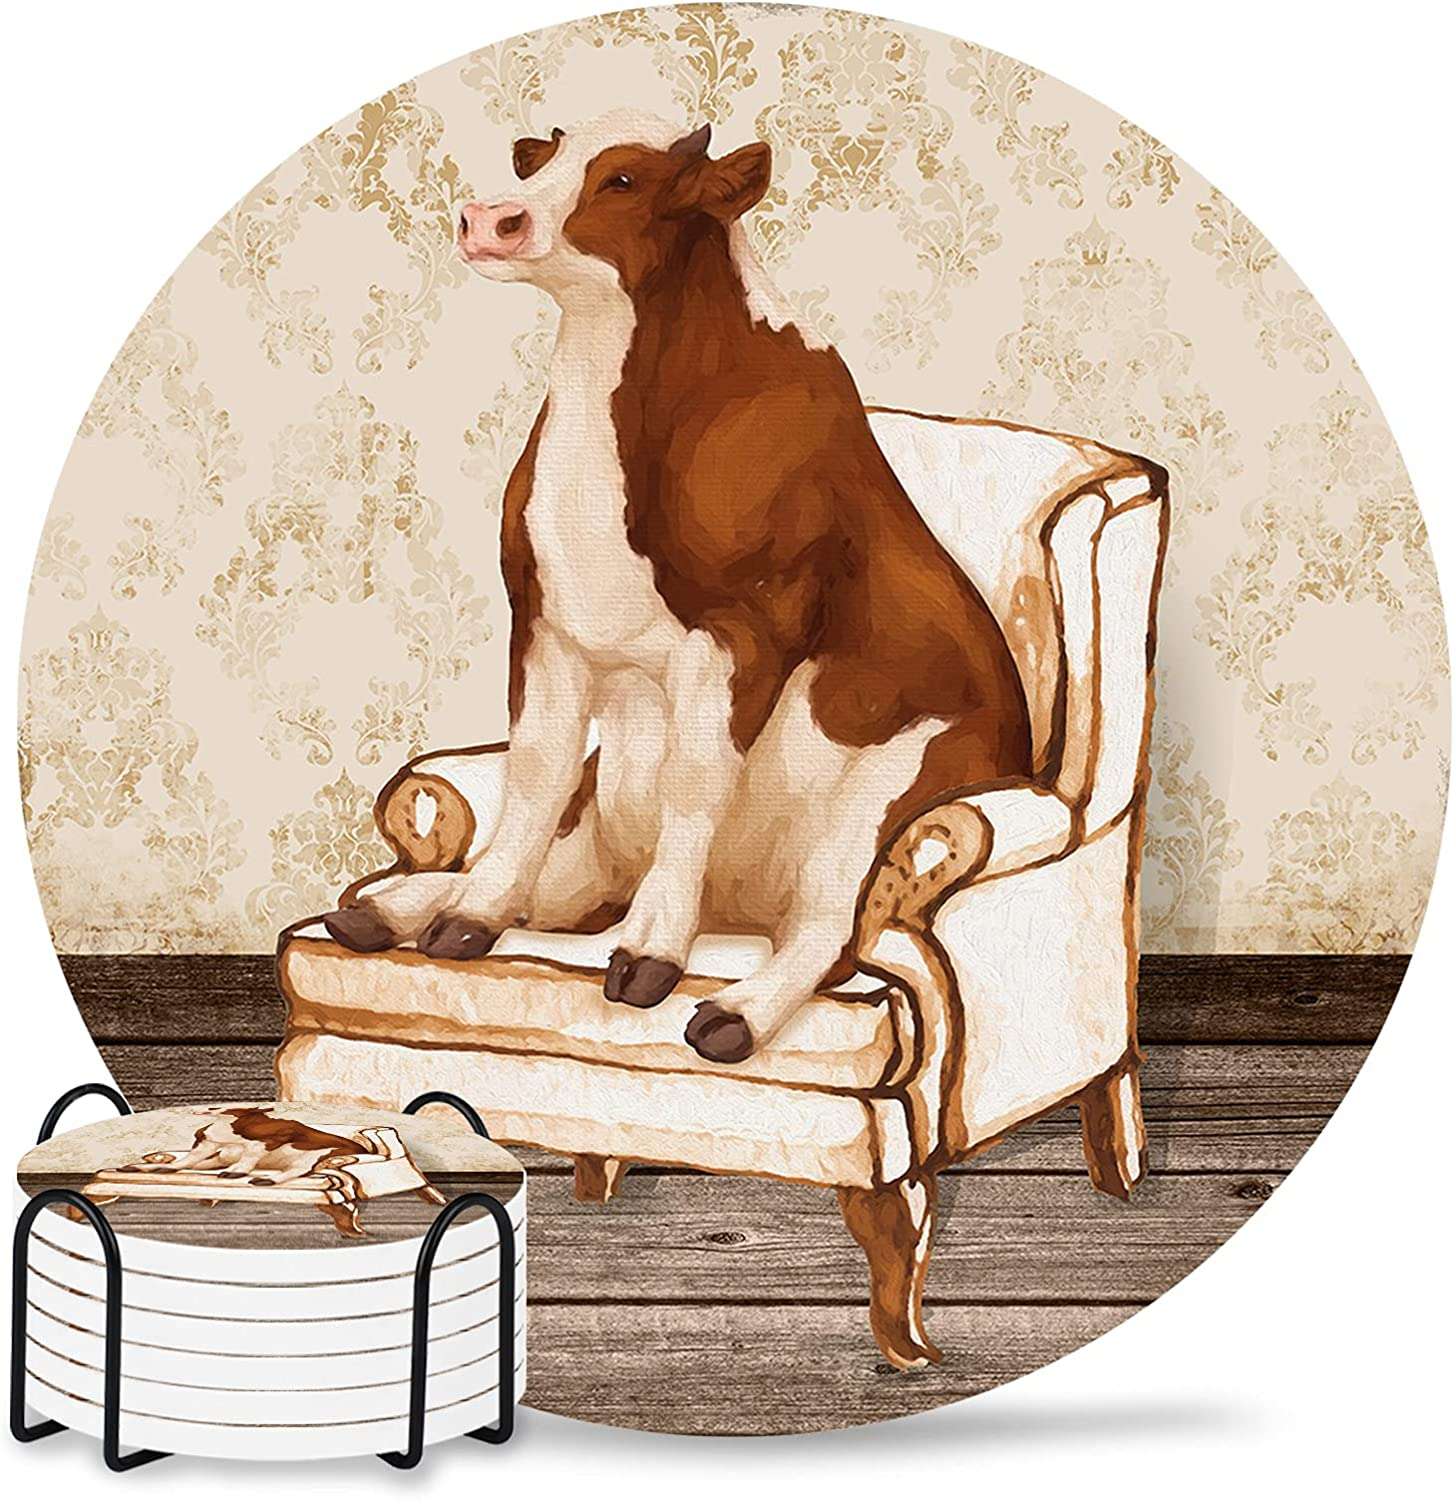 Animal Drink Coasters Complete Free Shipping Set of 6 Non 4 Water Fees free Absorbent Inch Slip